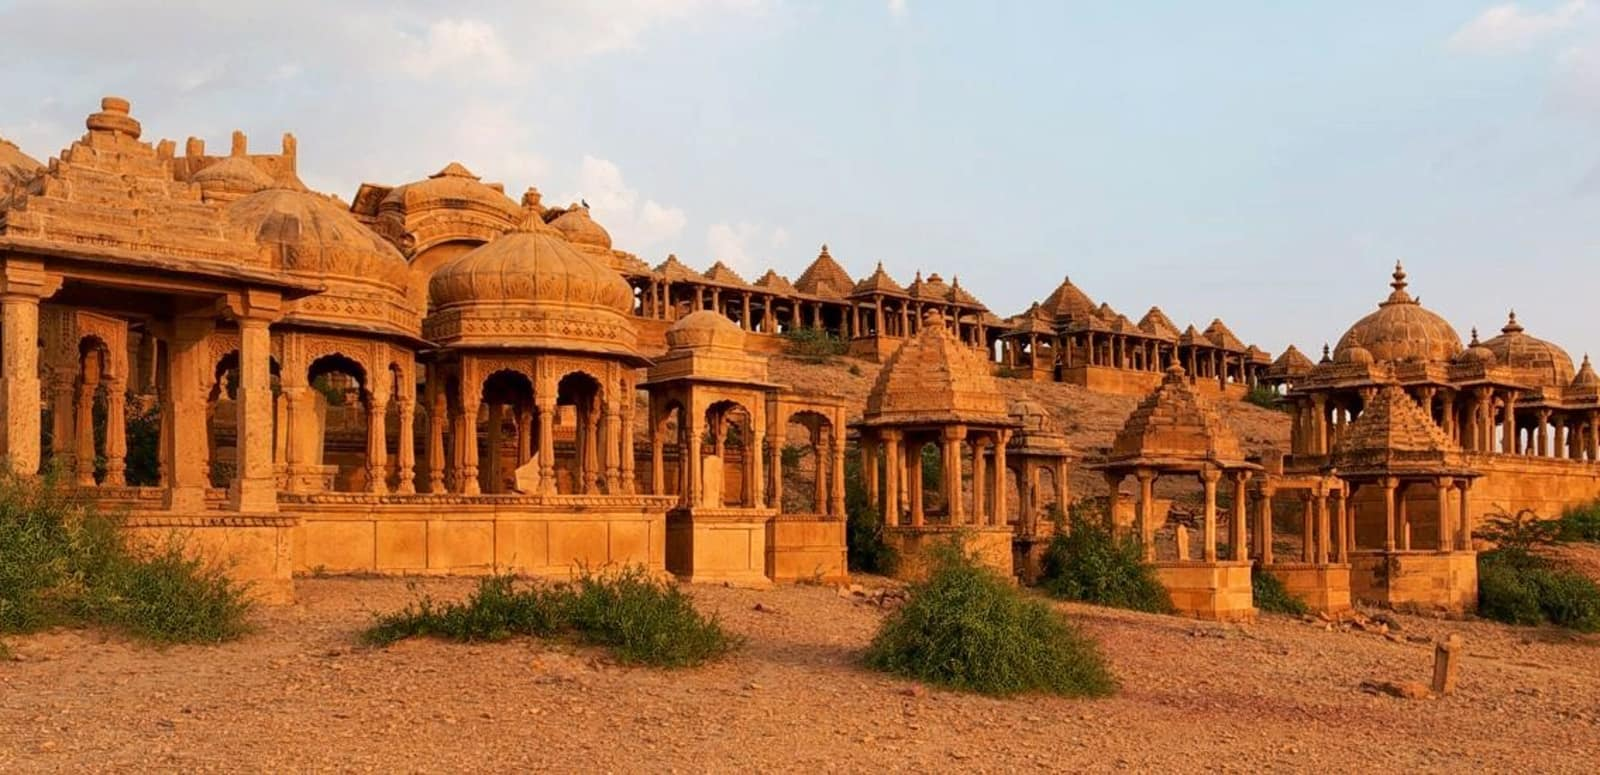 40 Best Places to Visit in Jaisalmer - 2019 (2800+ Reviews)